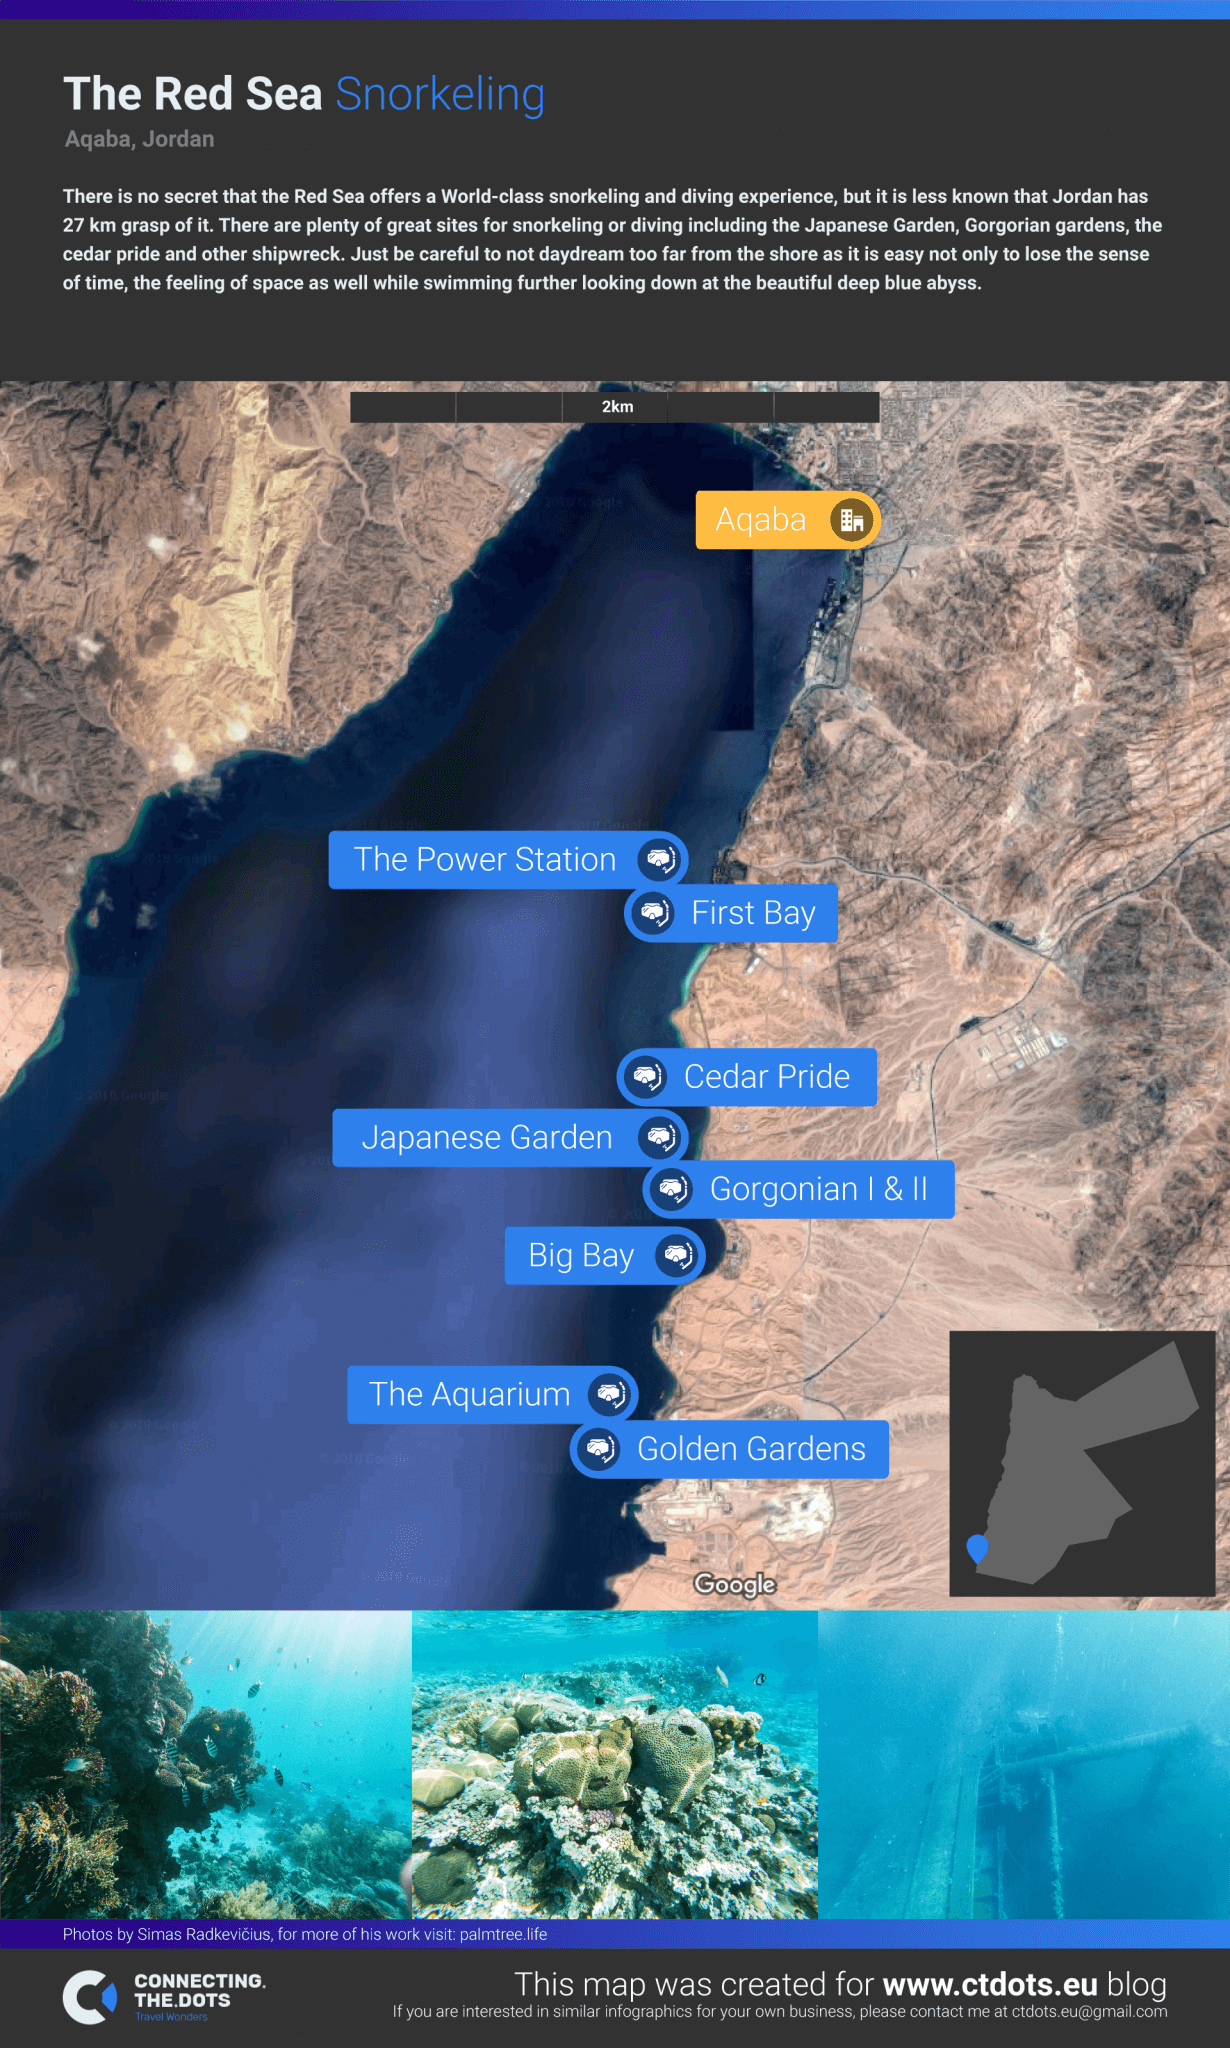 WorldClass Snorkeling Guide in the Red Sea near Aqaba